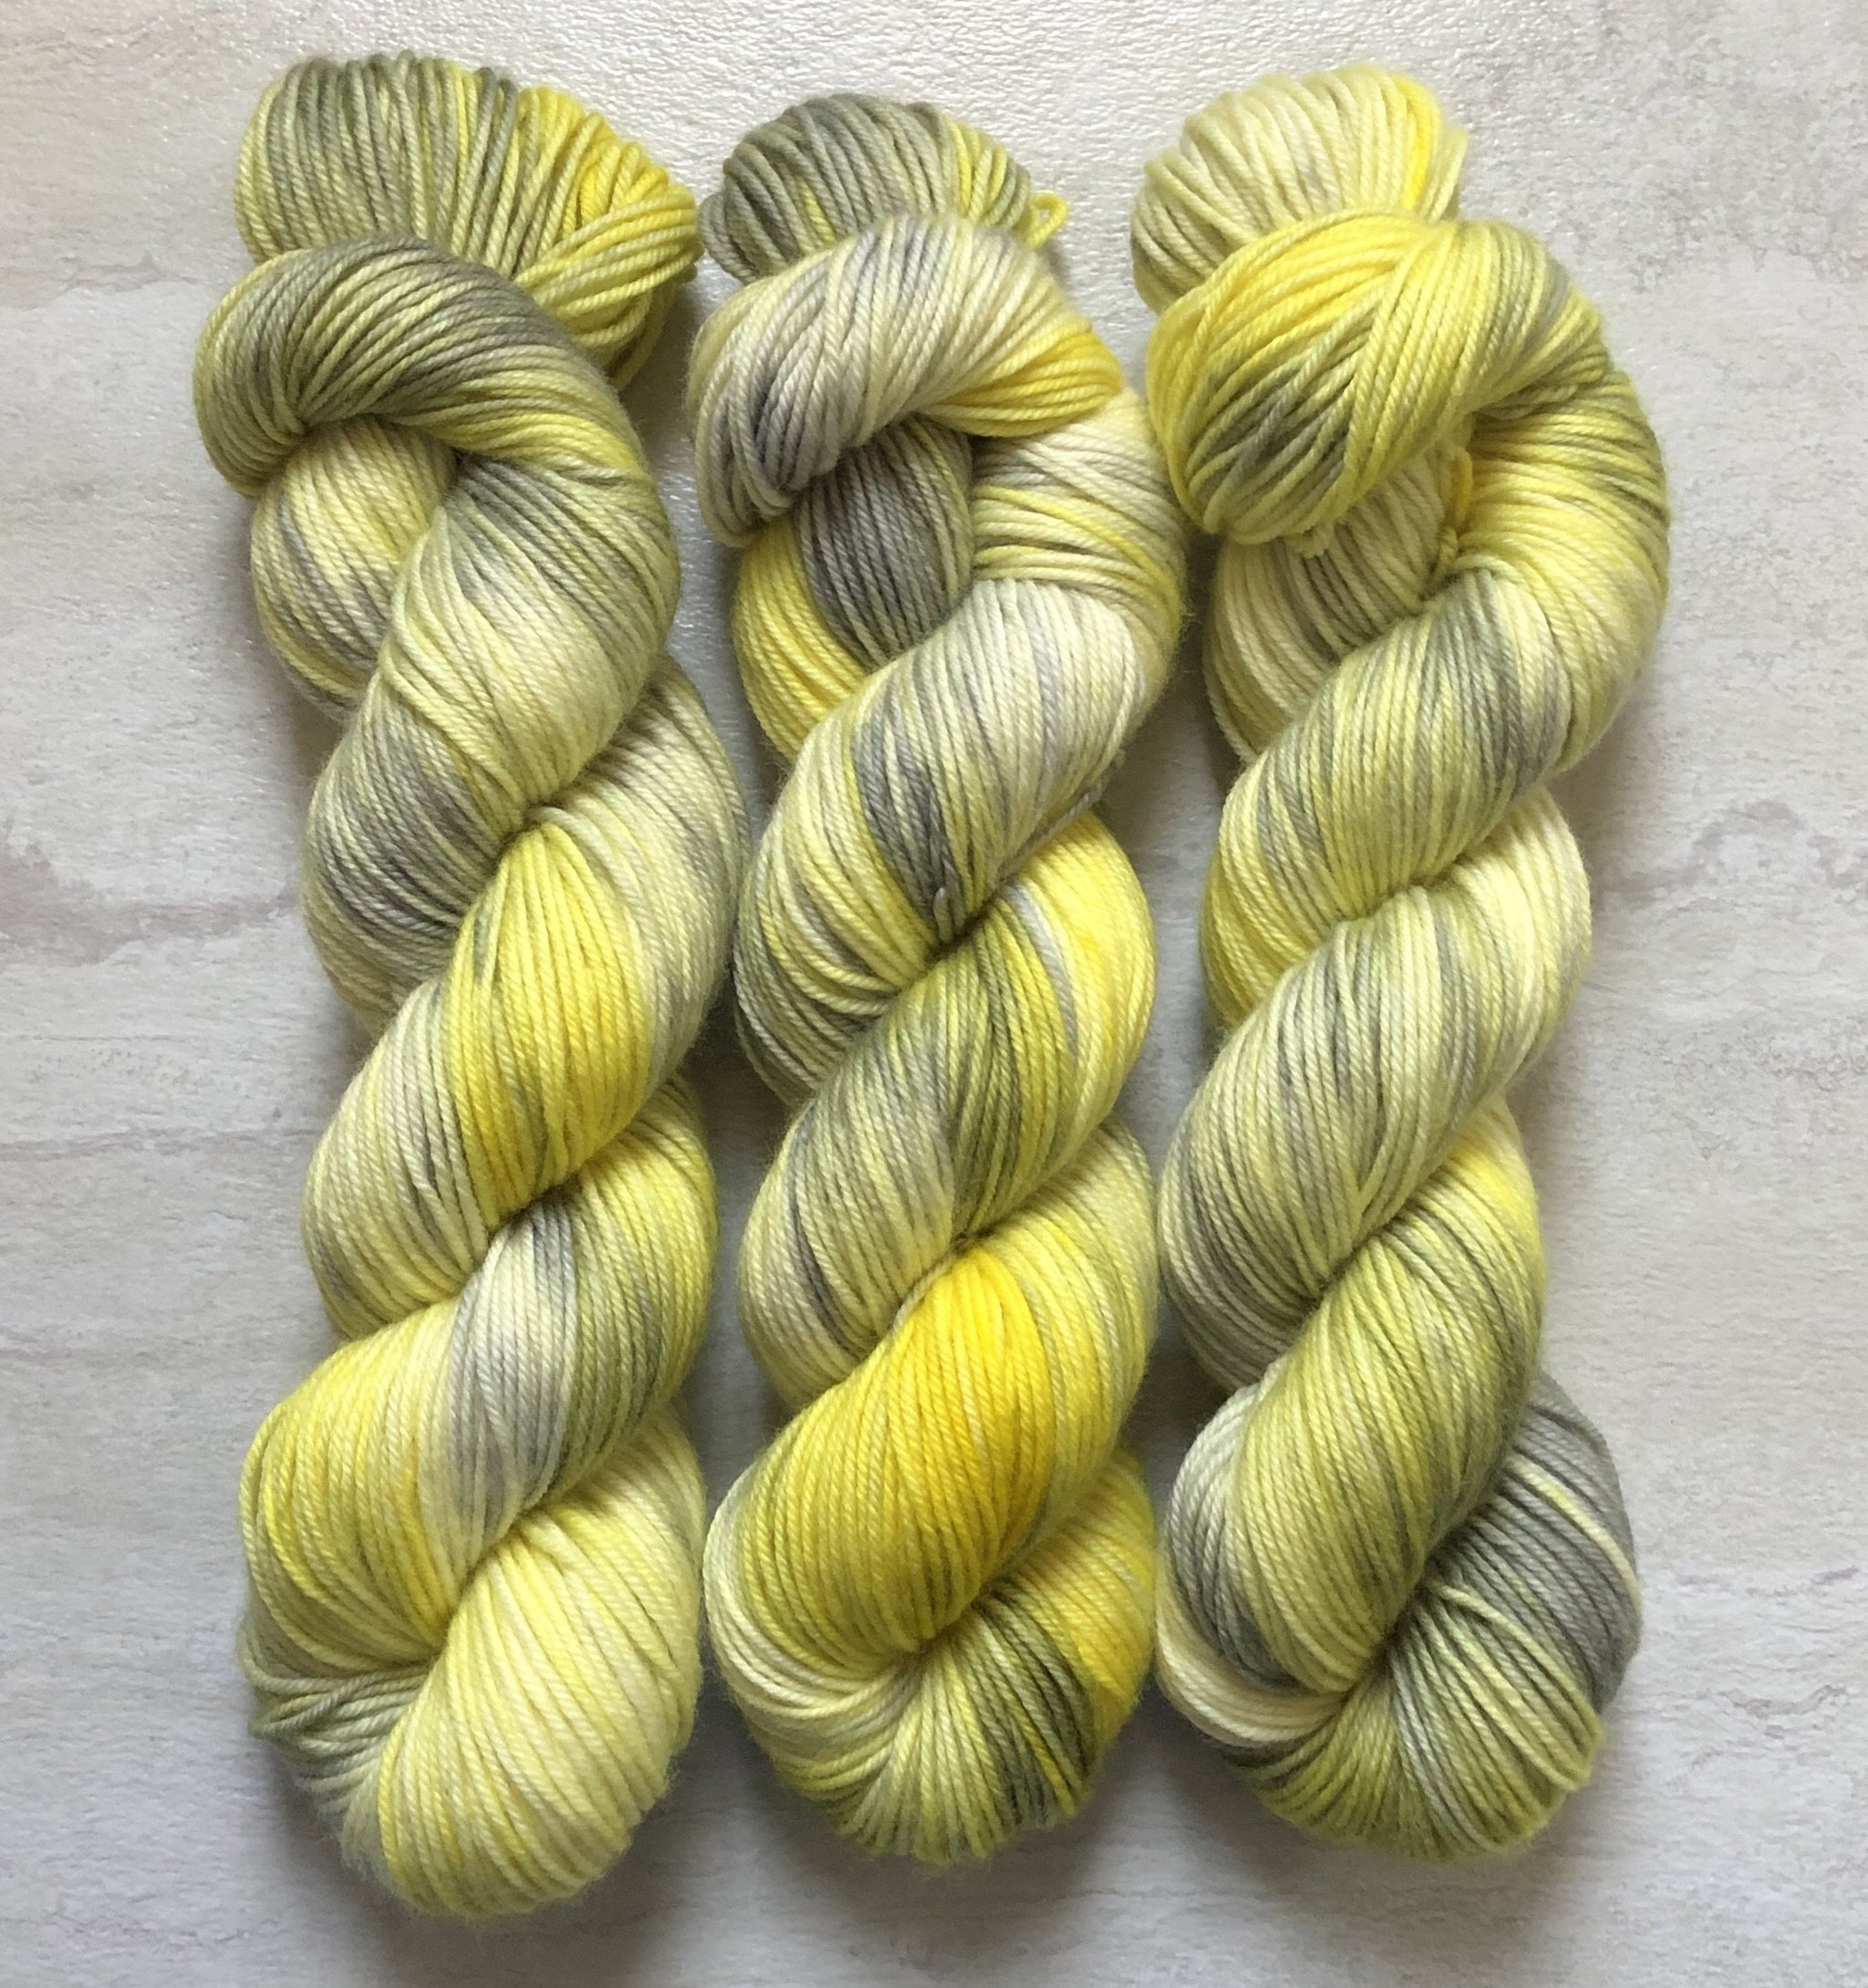 Partly Sunny - Squish Like Grape DK Yarn Dye is Cast Yarns